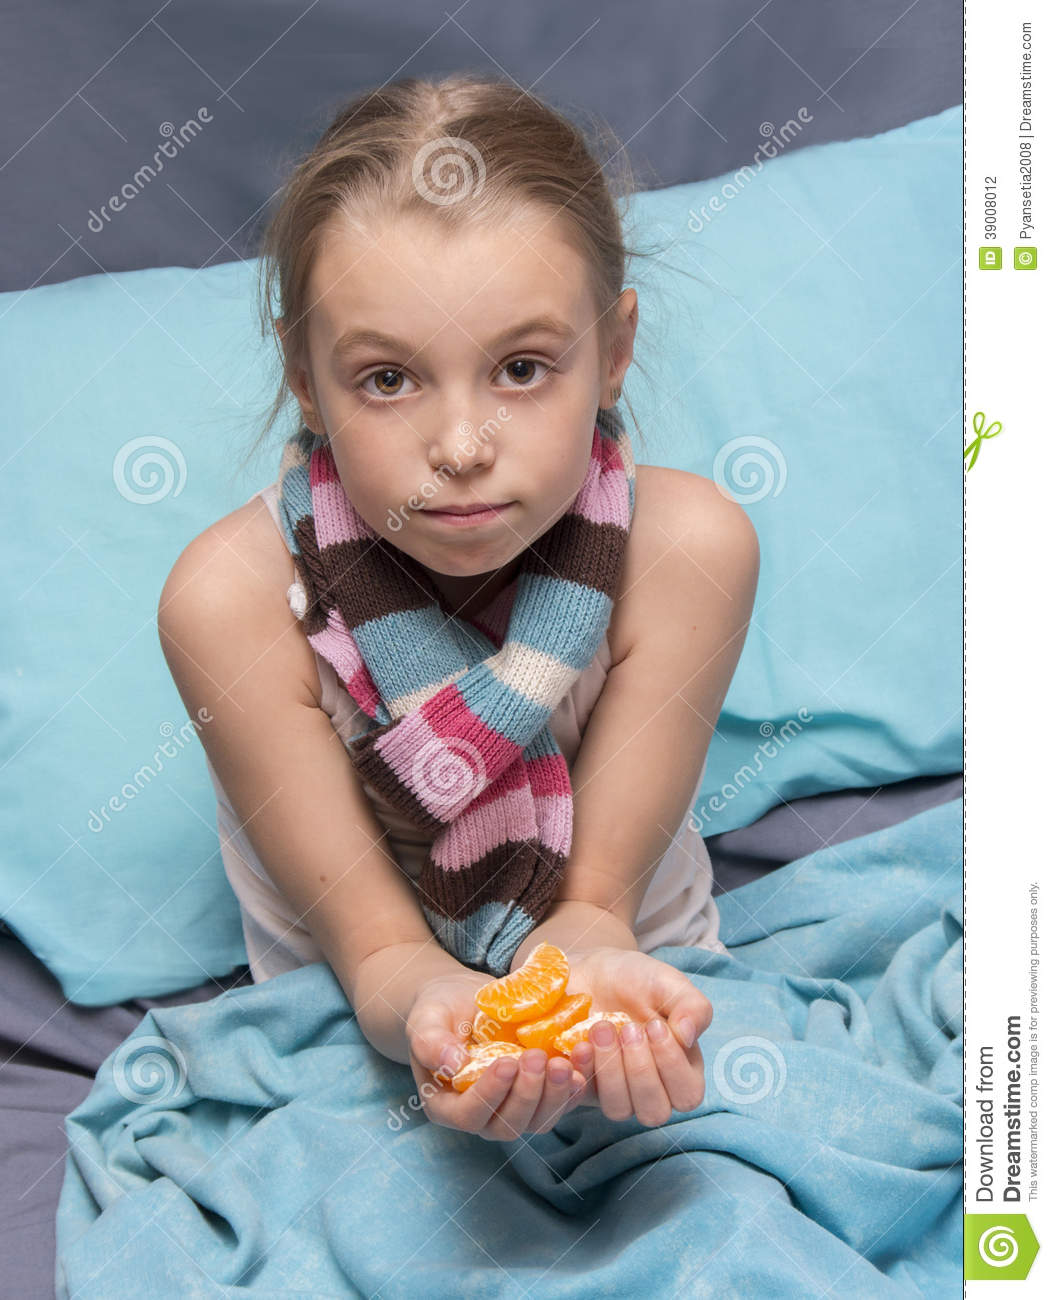 Child Is Recovering From An Illness Stock Photo - Image of ...